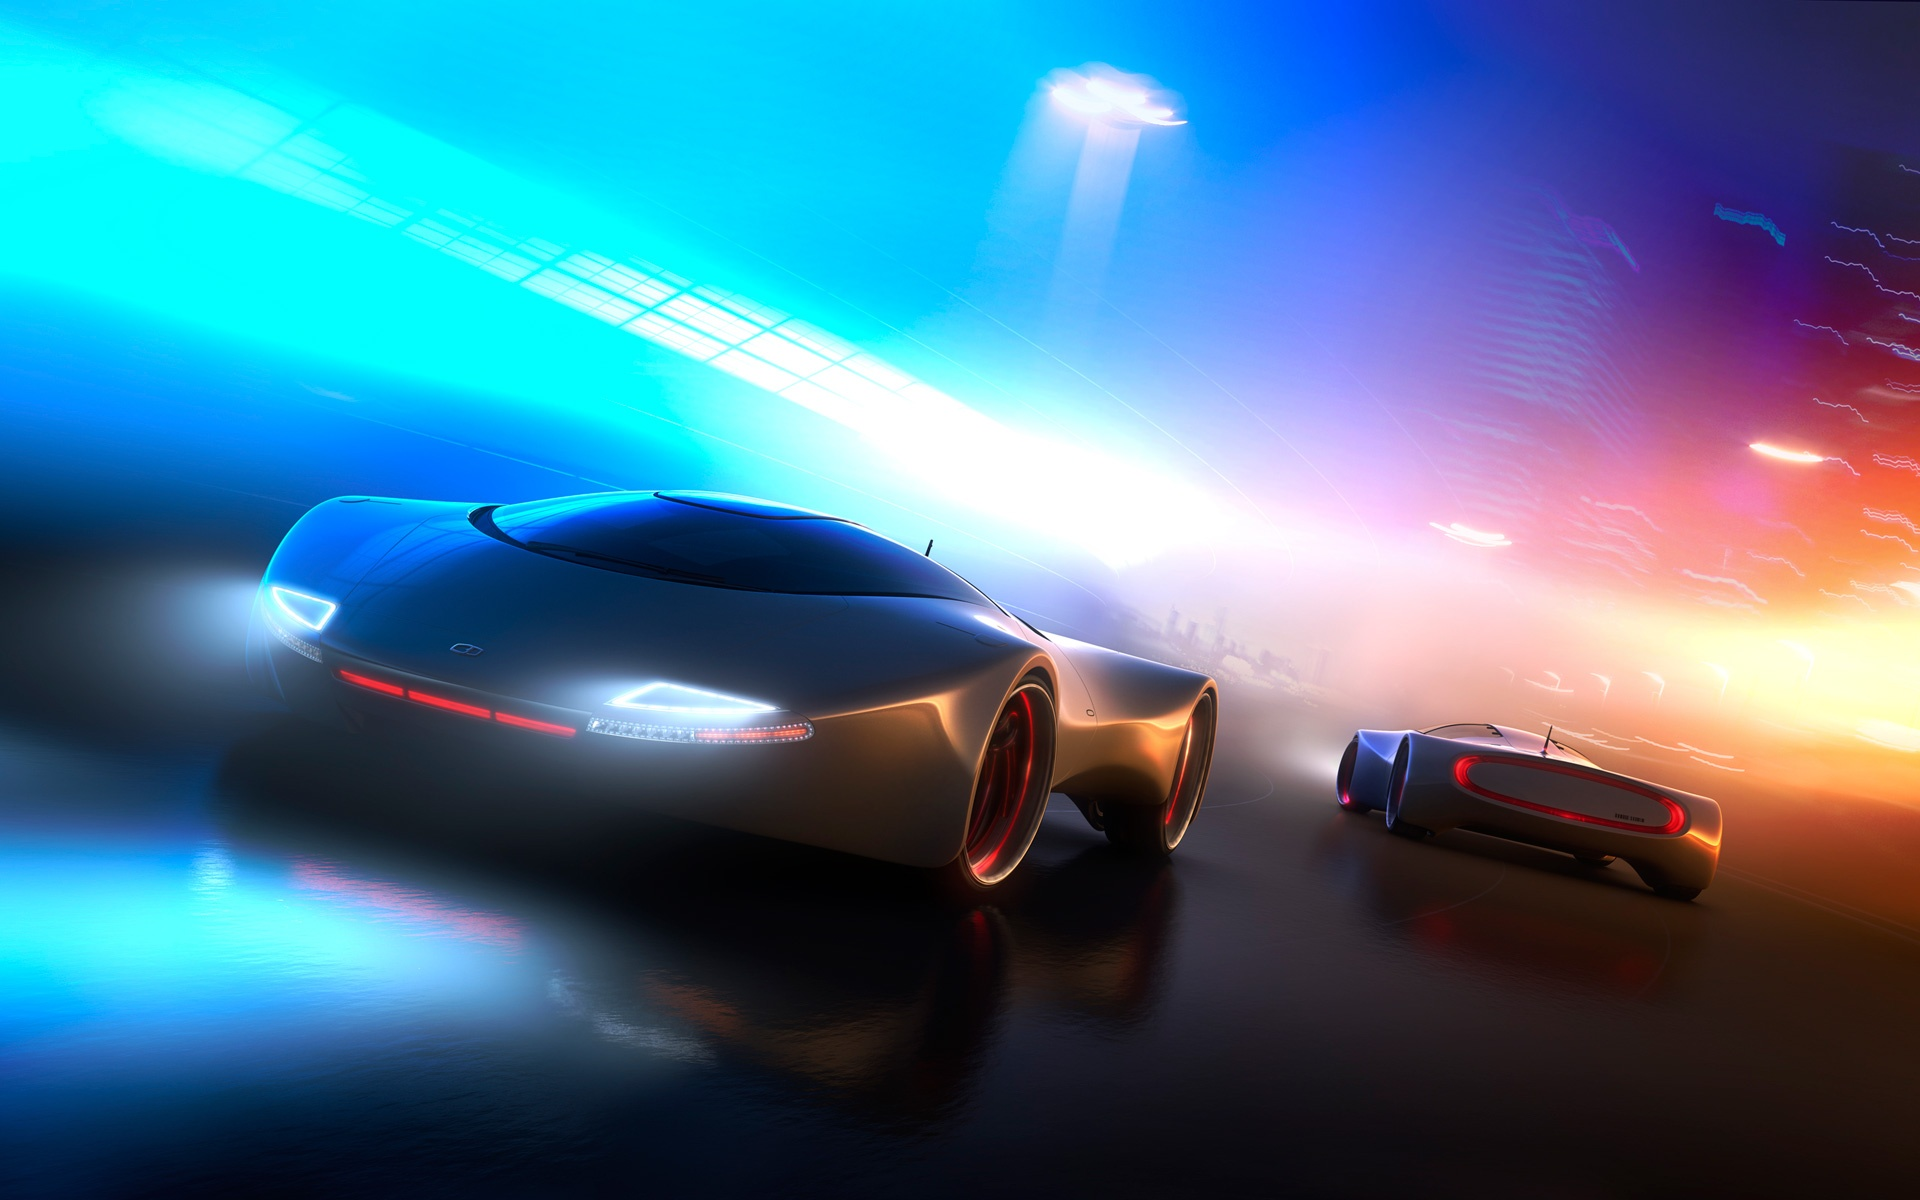 Concept Car 2020 Wallpapers In Jpg Format For Free Download